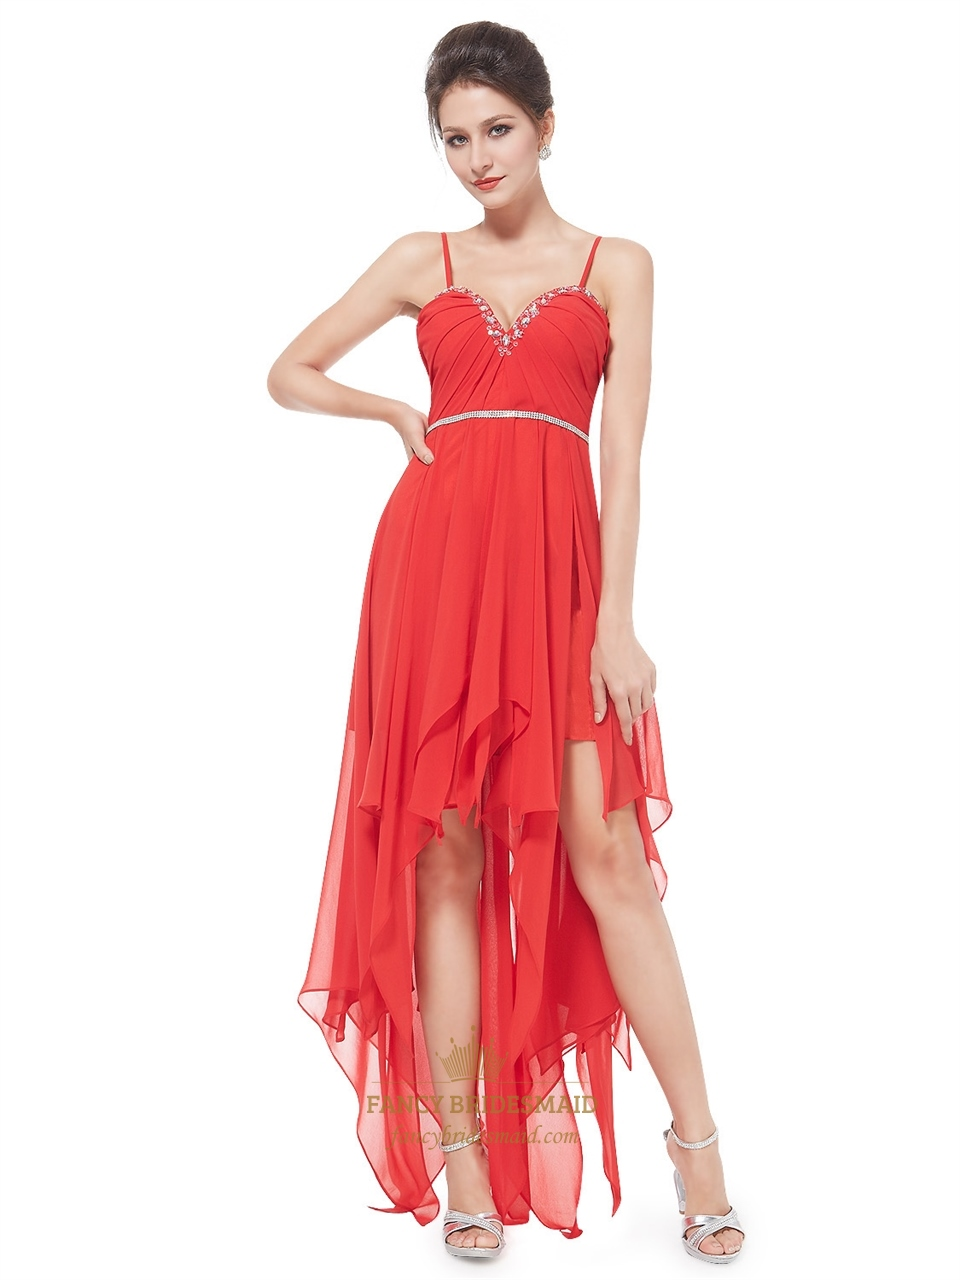 Red spaghetti strap chiffon high low ruffle prom dress with red spaghetti strap chiffon high low ruffle prom dress with beading ombrellifo Choice Image